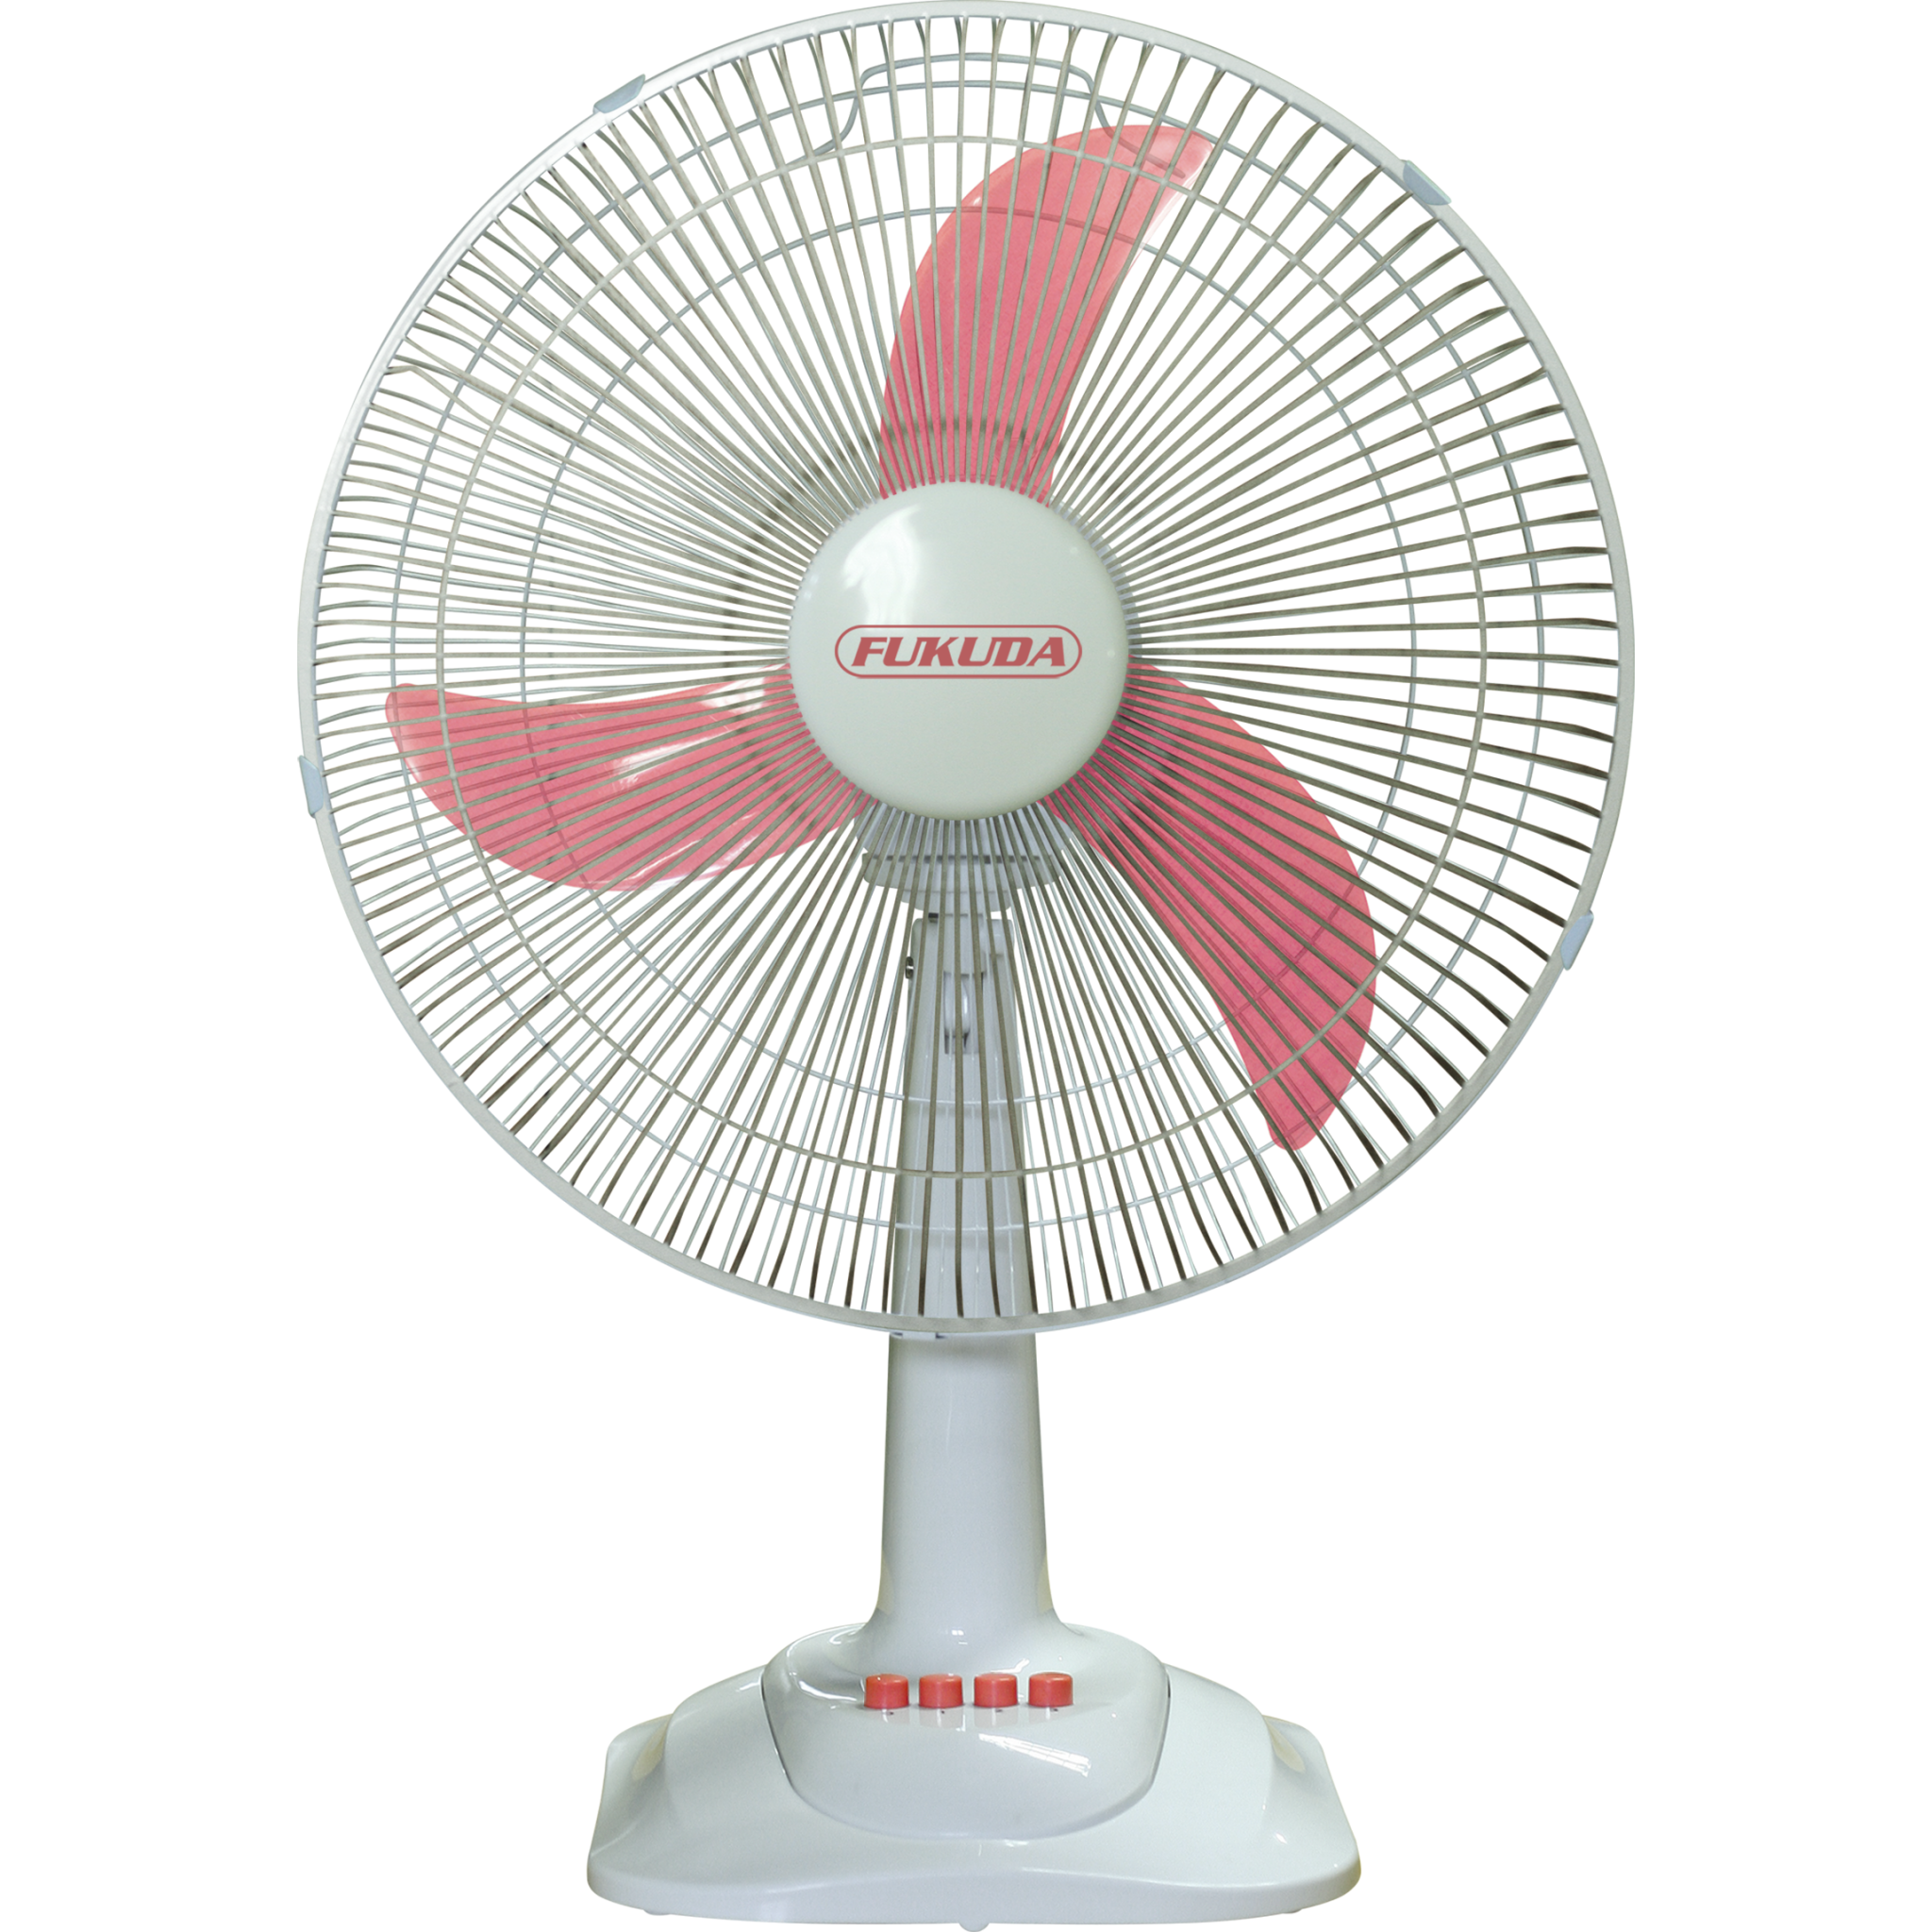 fan, appliances you need your workplace fukuda asia #16860